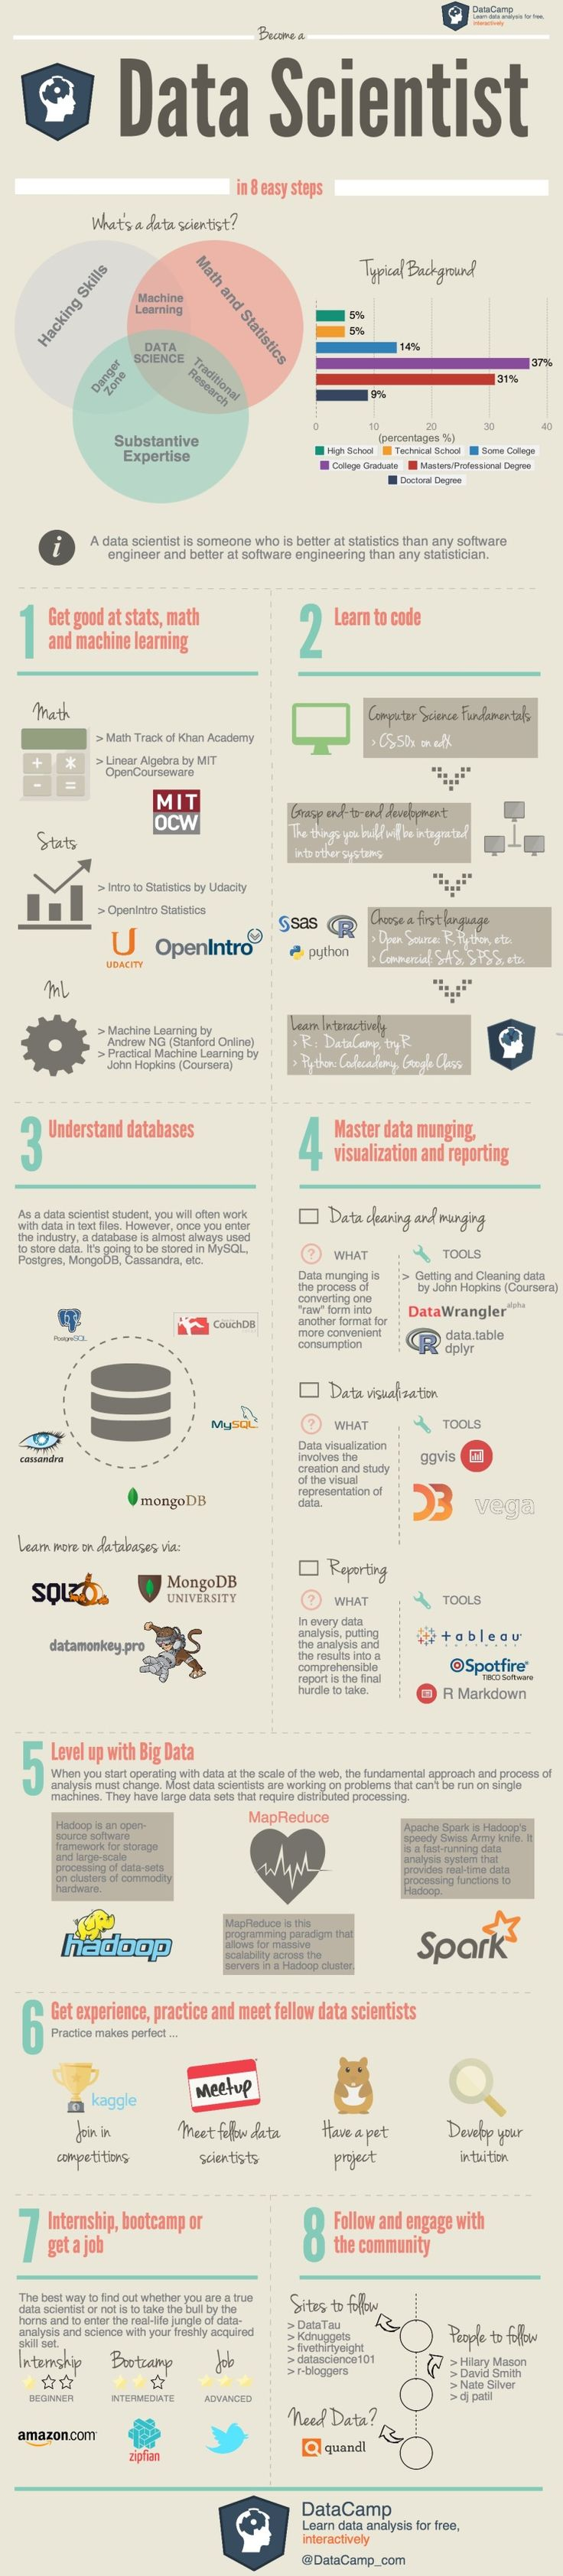 138 best Data Management images on Pinterest | Baby photos, Families ...